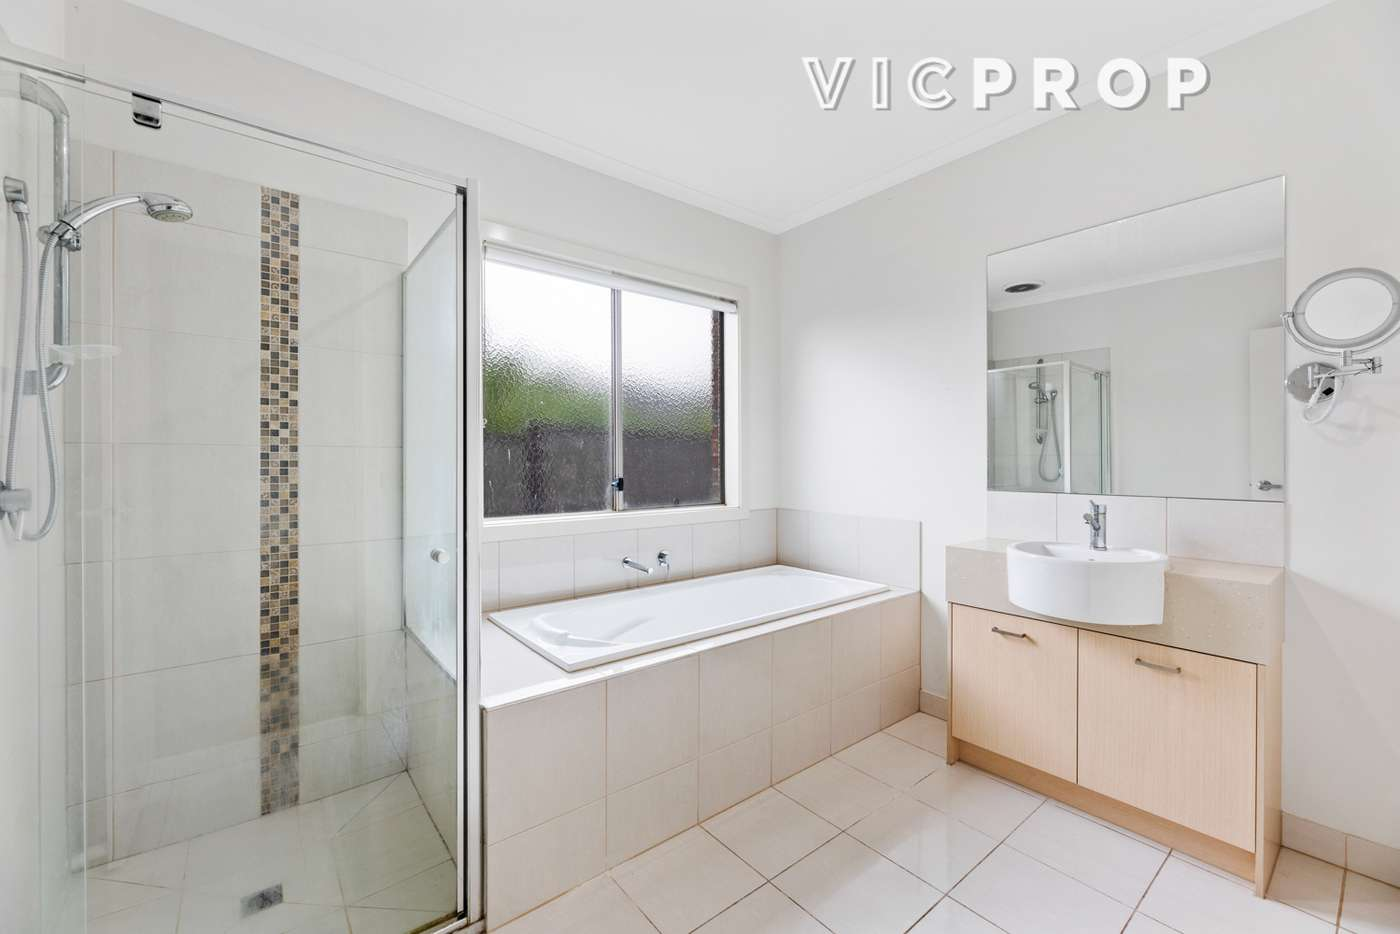 Sixth view of Homely house listing, 39 Michael Place, Point Cook VIC 3030